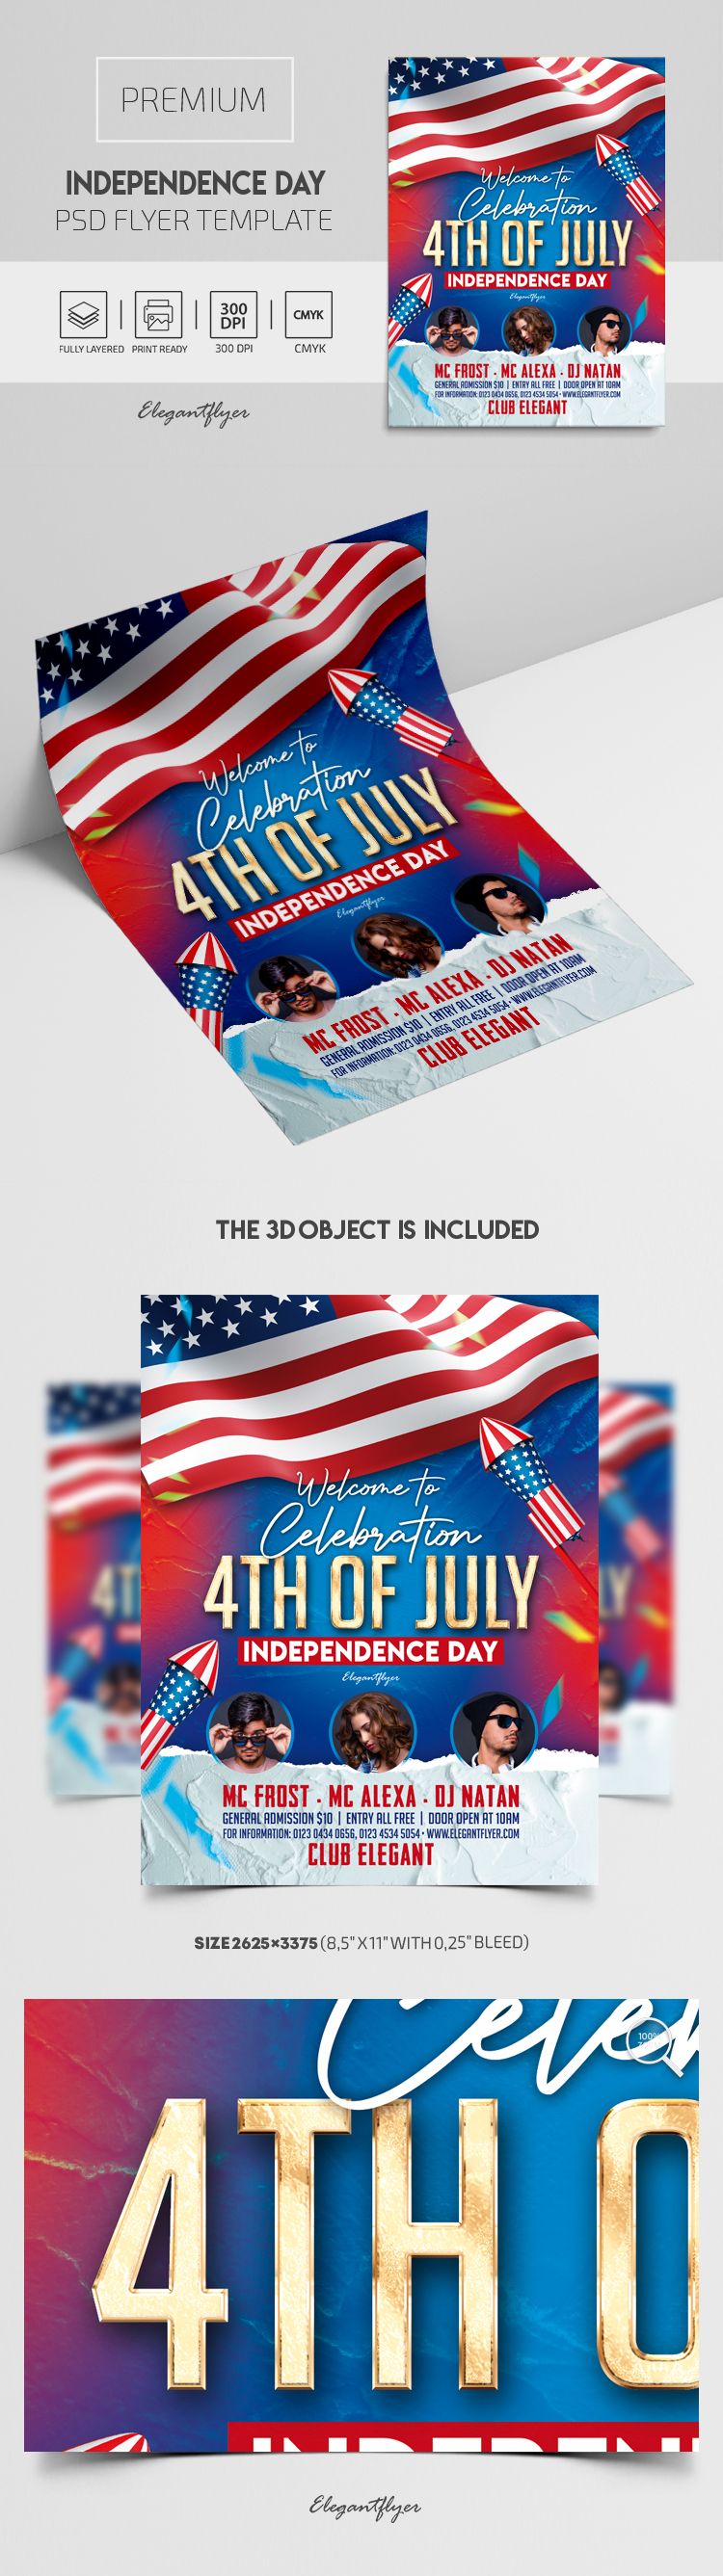 Independence Day – Premium PSD Flyer Template